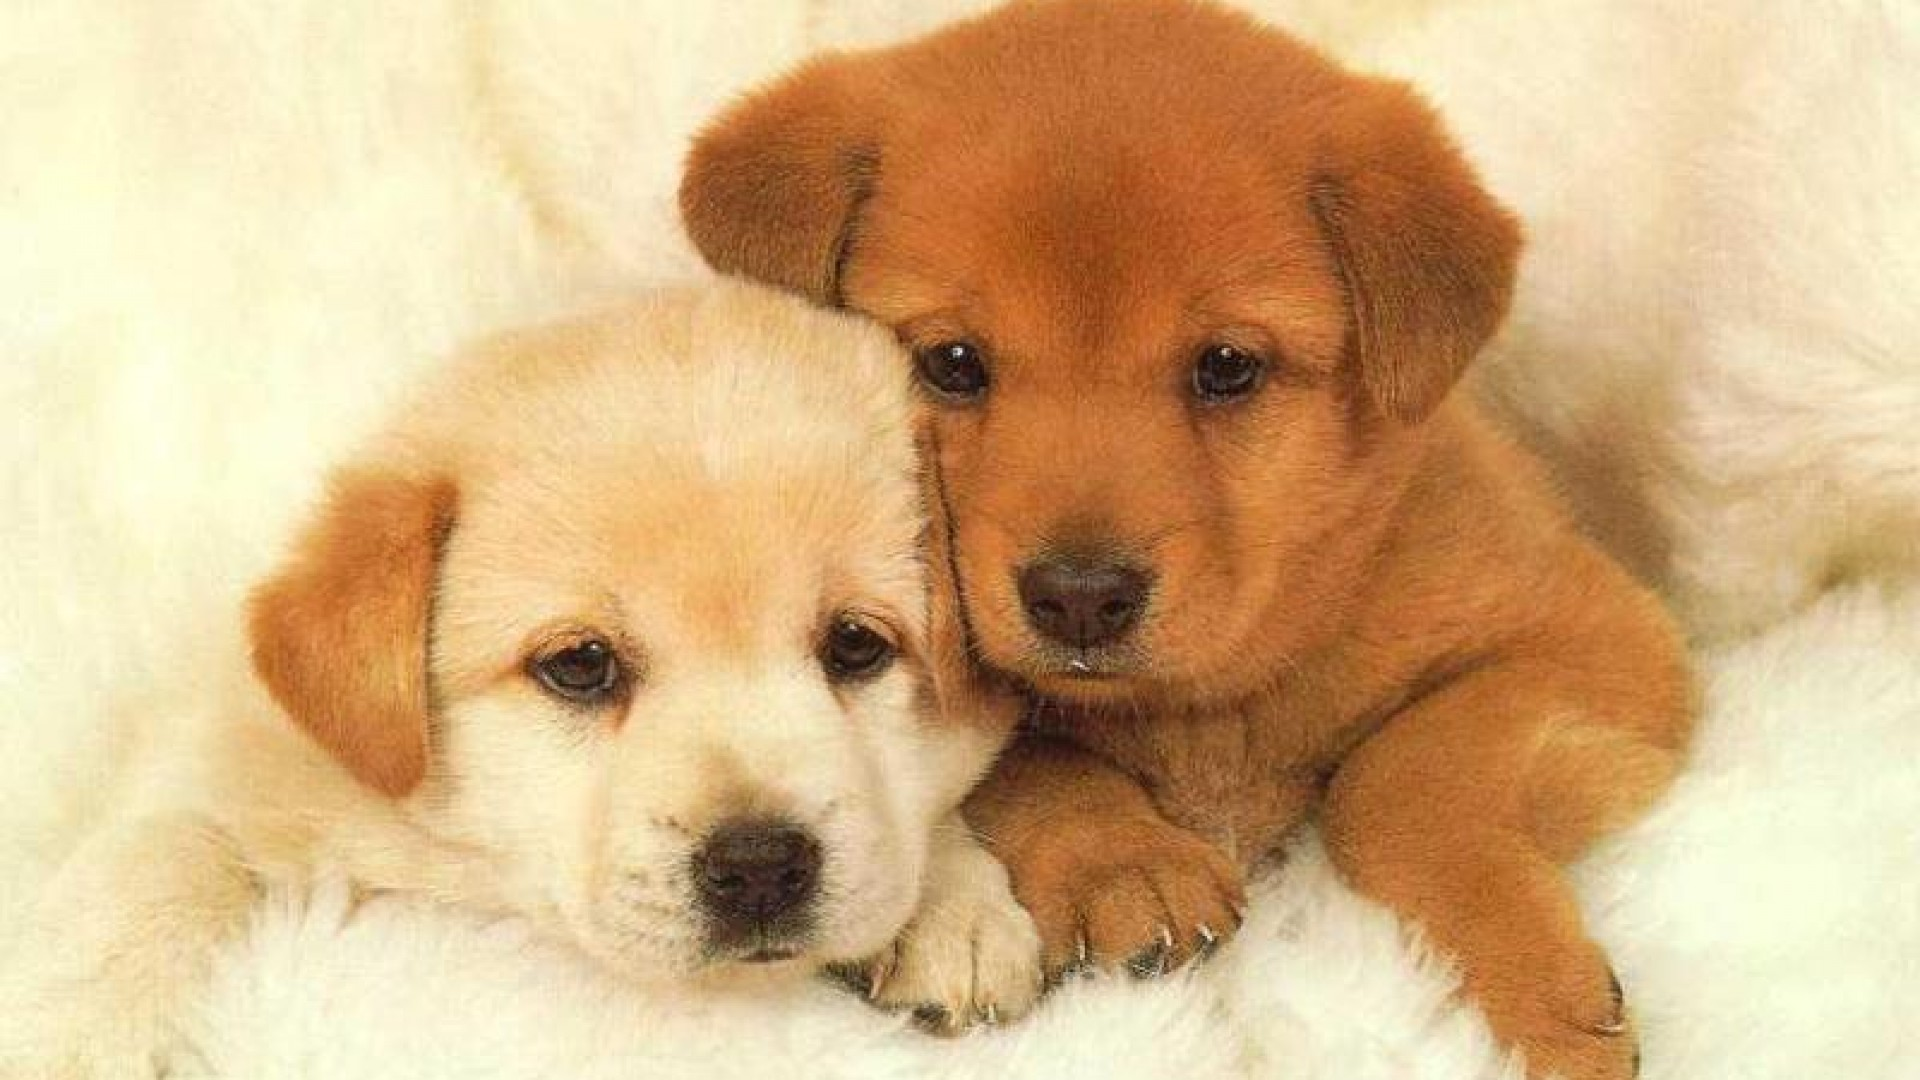 Puppy Wallpaper 1920x1080 46573